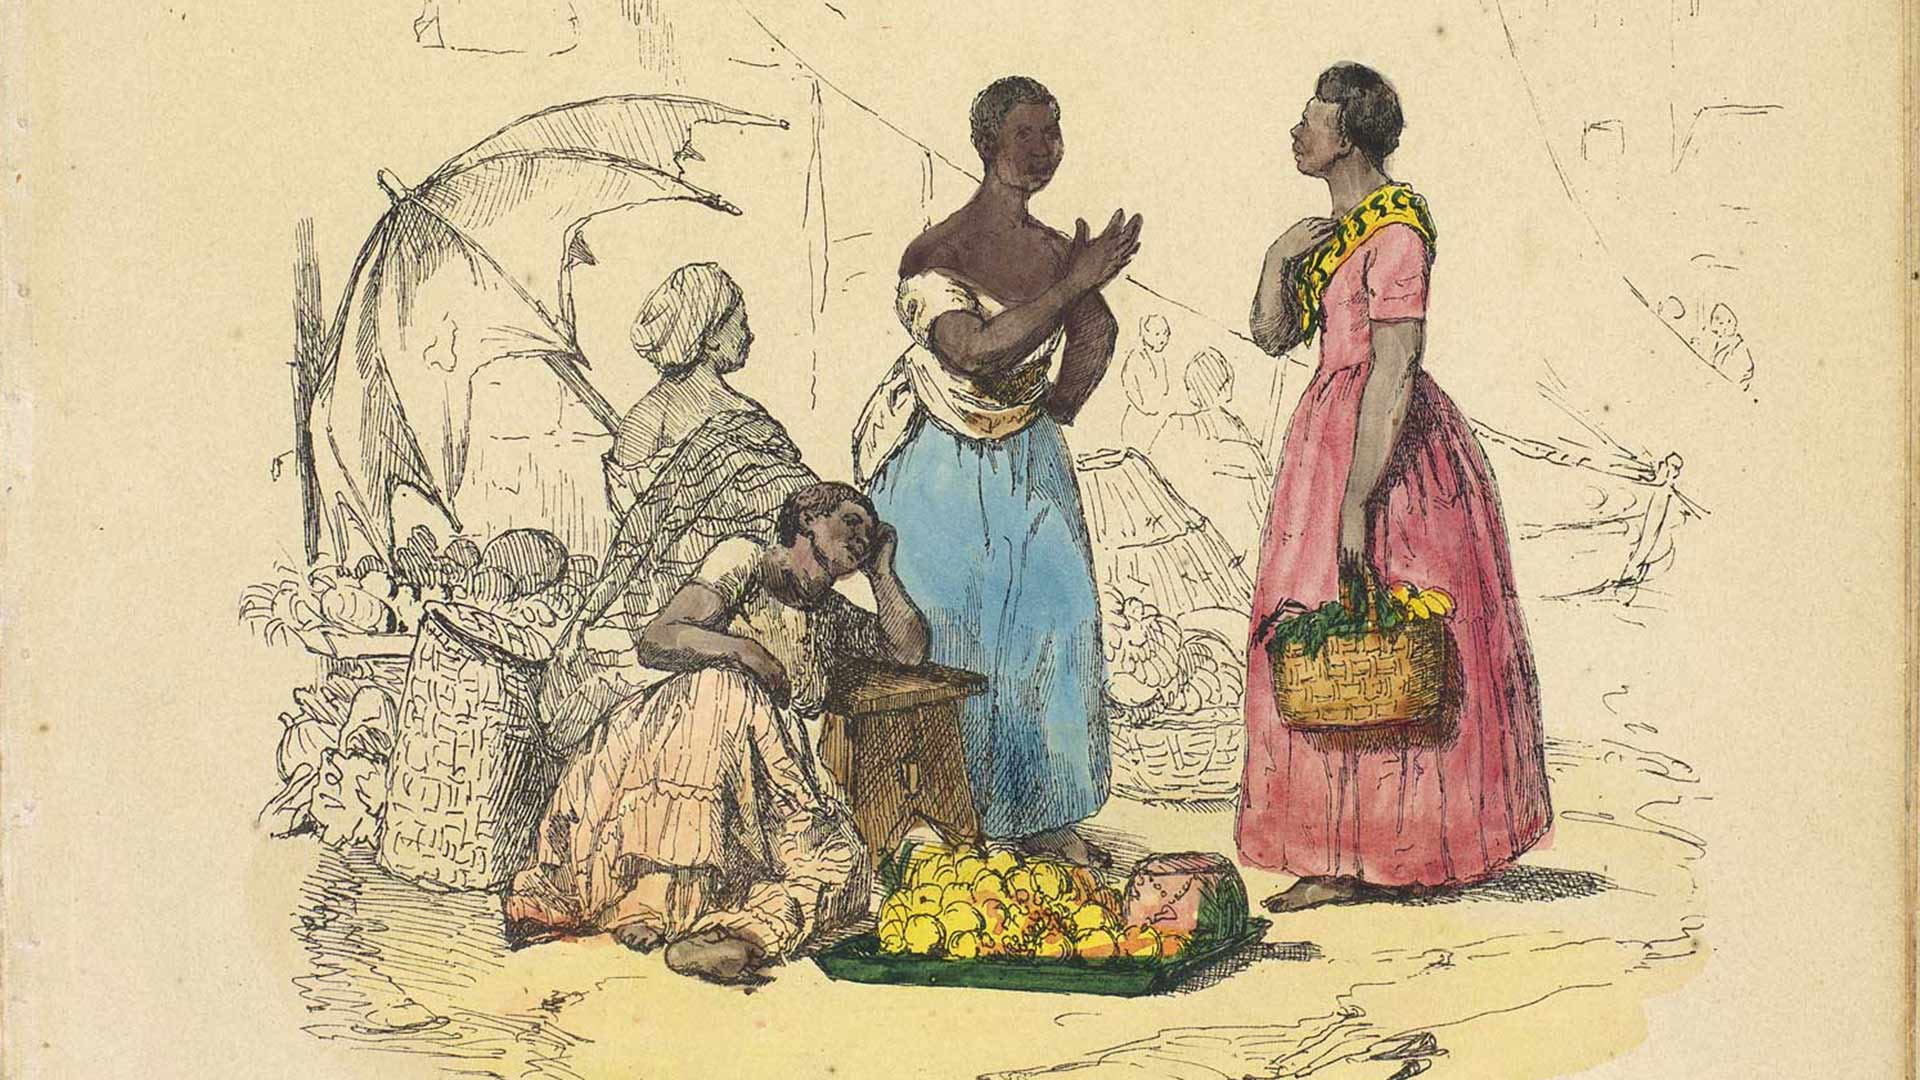 "The new digital database Enslaved.org: Peoples of the Historic Slave Trade seeks to recover fuller stories of individuals such as these women pictured on the 19th century lithograph ""A Market Scene"" by Frederico Guilherme Briggs. (Image courtesy of BNDigital, Fundação Biblioteca Nacional, Rio de Janeiro)"